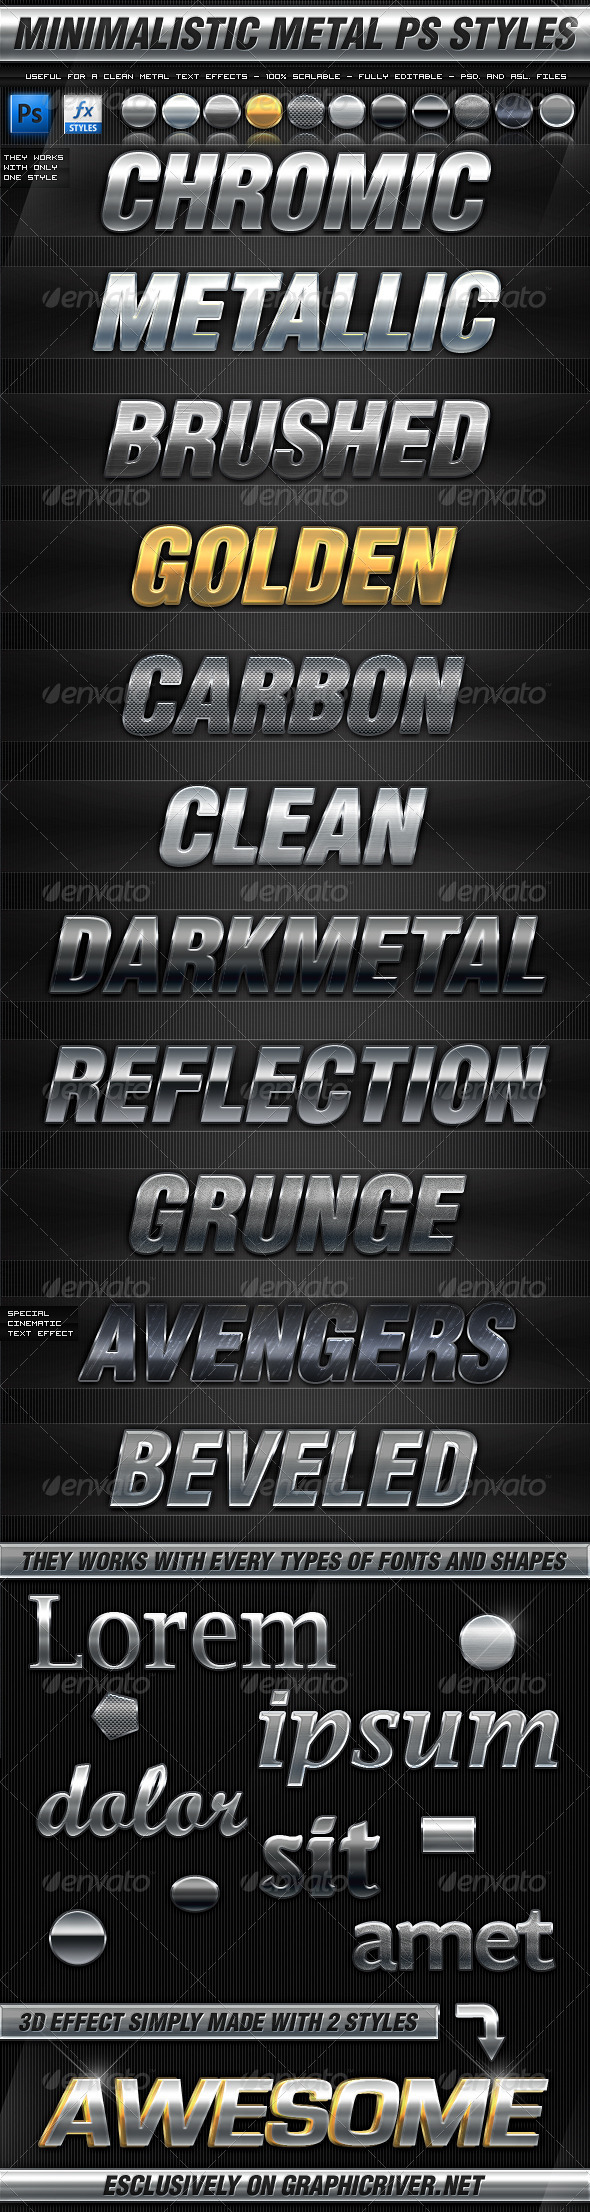 GraphicRiver Minimalistic Metal Photoshop Styles 2311223